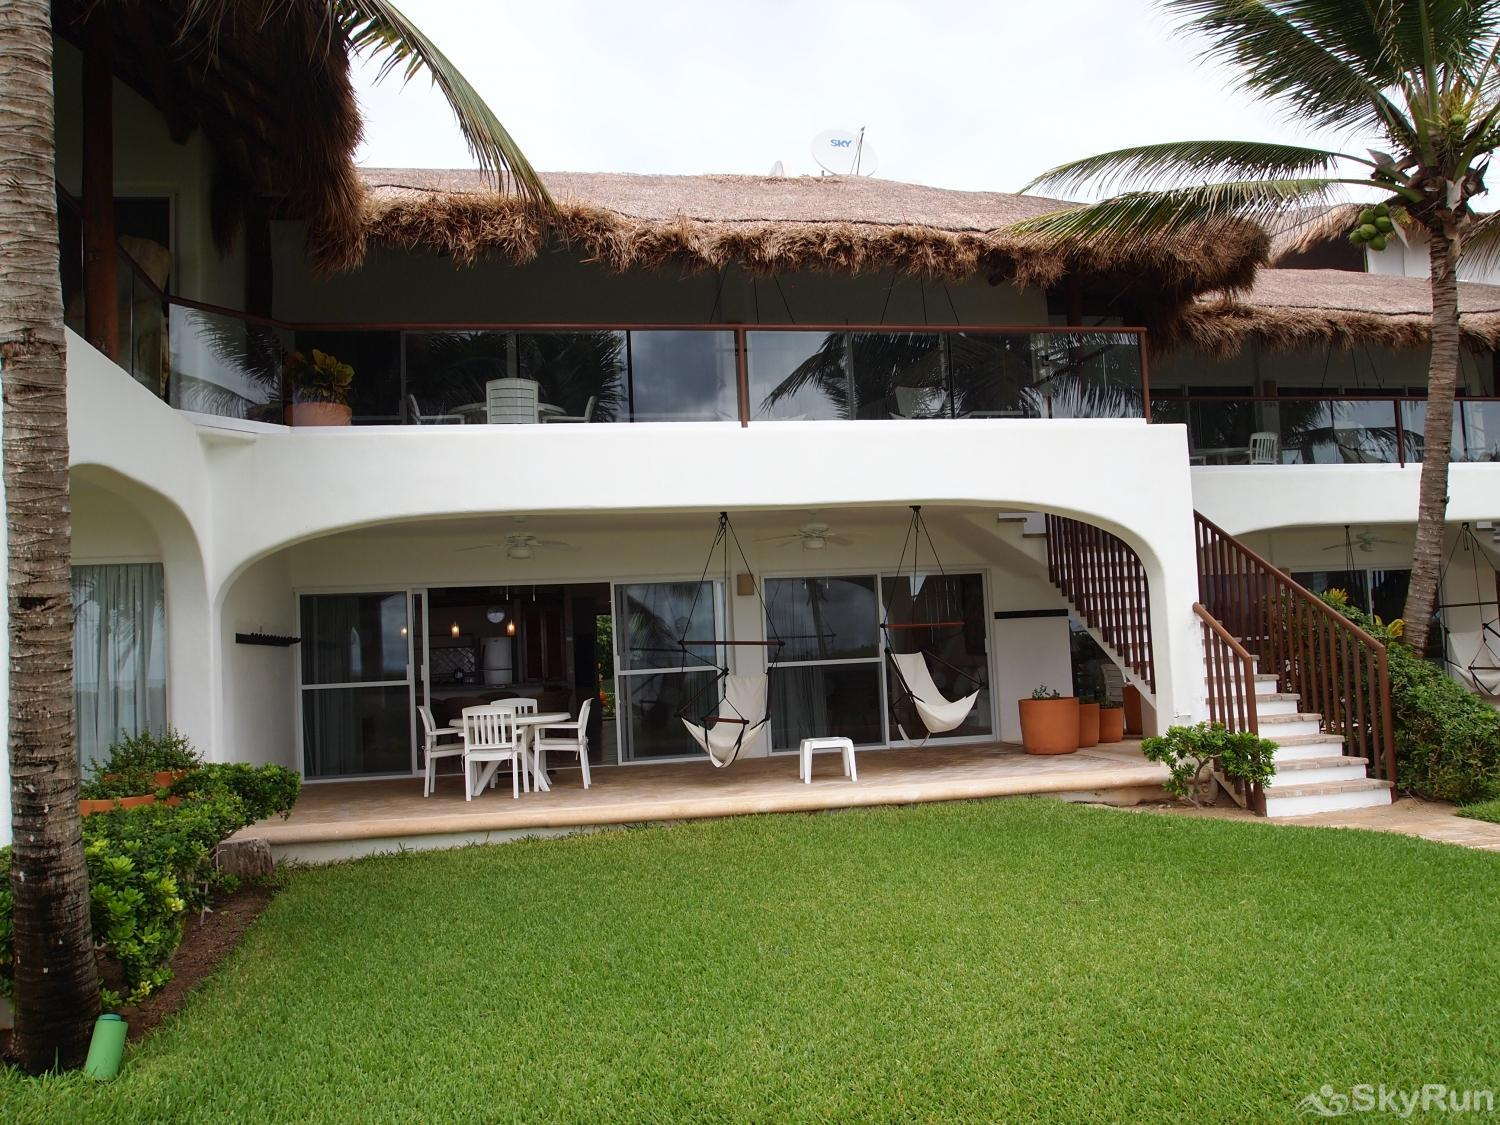 Las Villas Akumal 108  3 Bedroom Beachfront Second Floor 3 Bedroom 2nd Floor